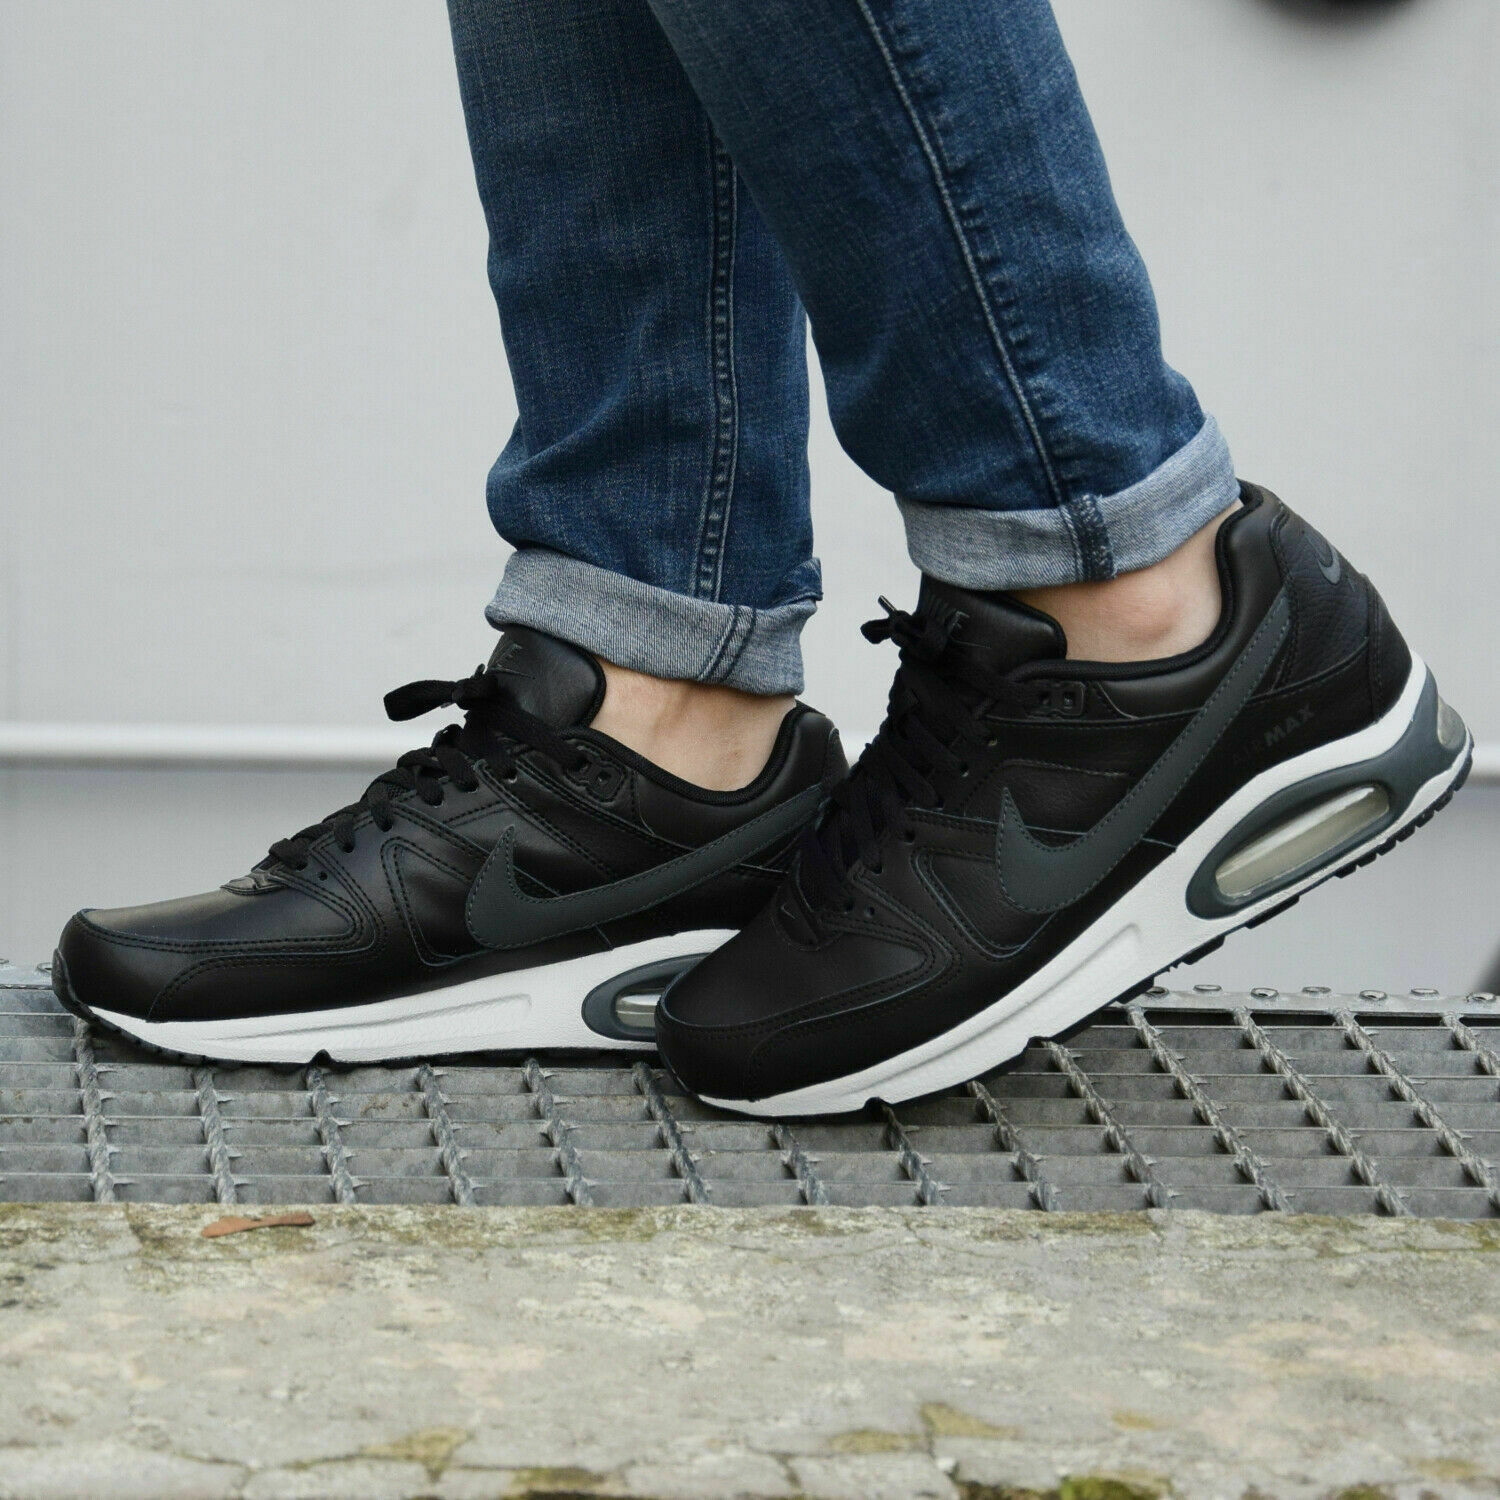 NIKE AIR MAX COMMAND LEATHER Trainers Casual Fashion Black Various sizes